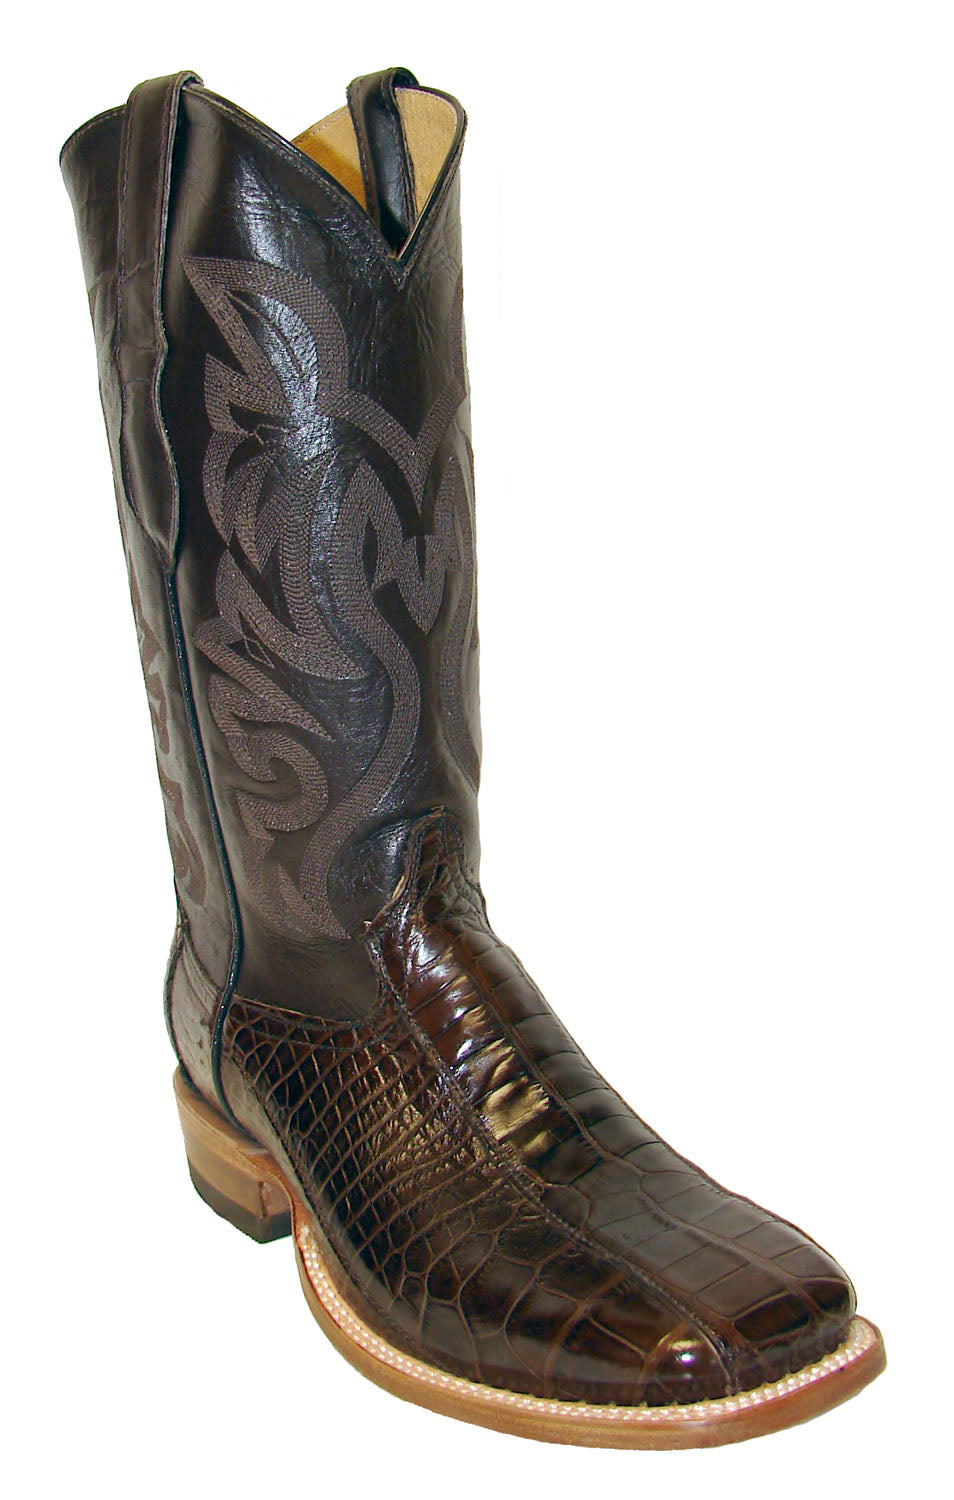 Cowtown Pieced Chocolate Gator Boots for Men